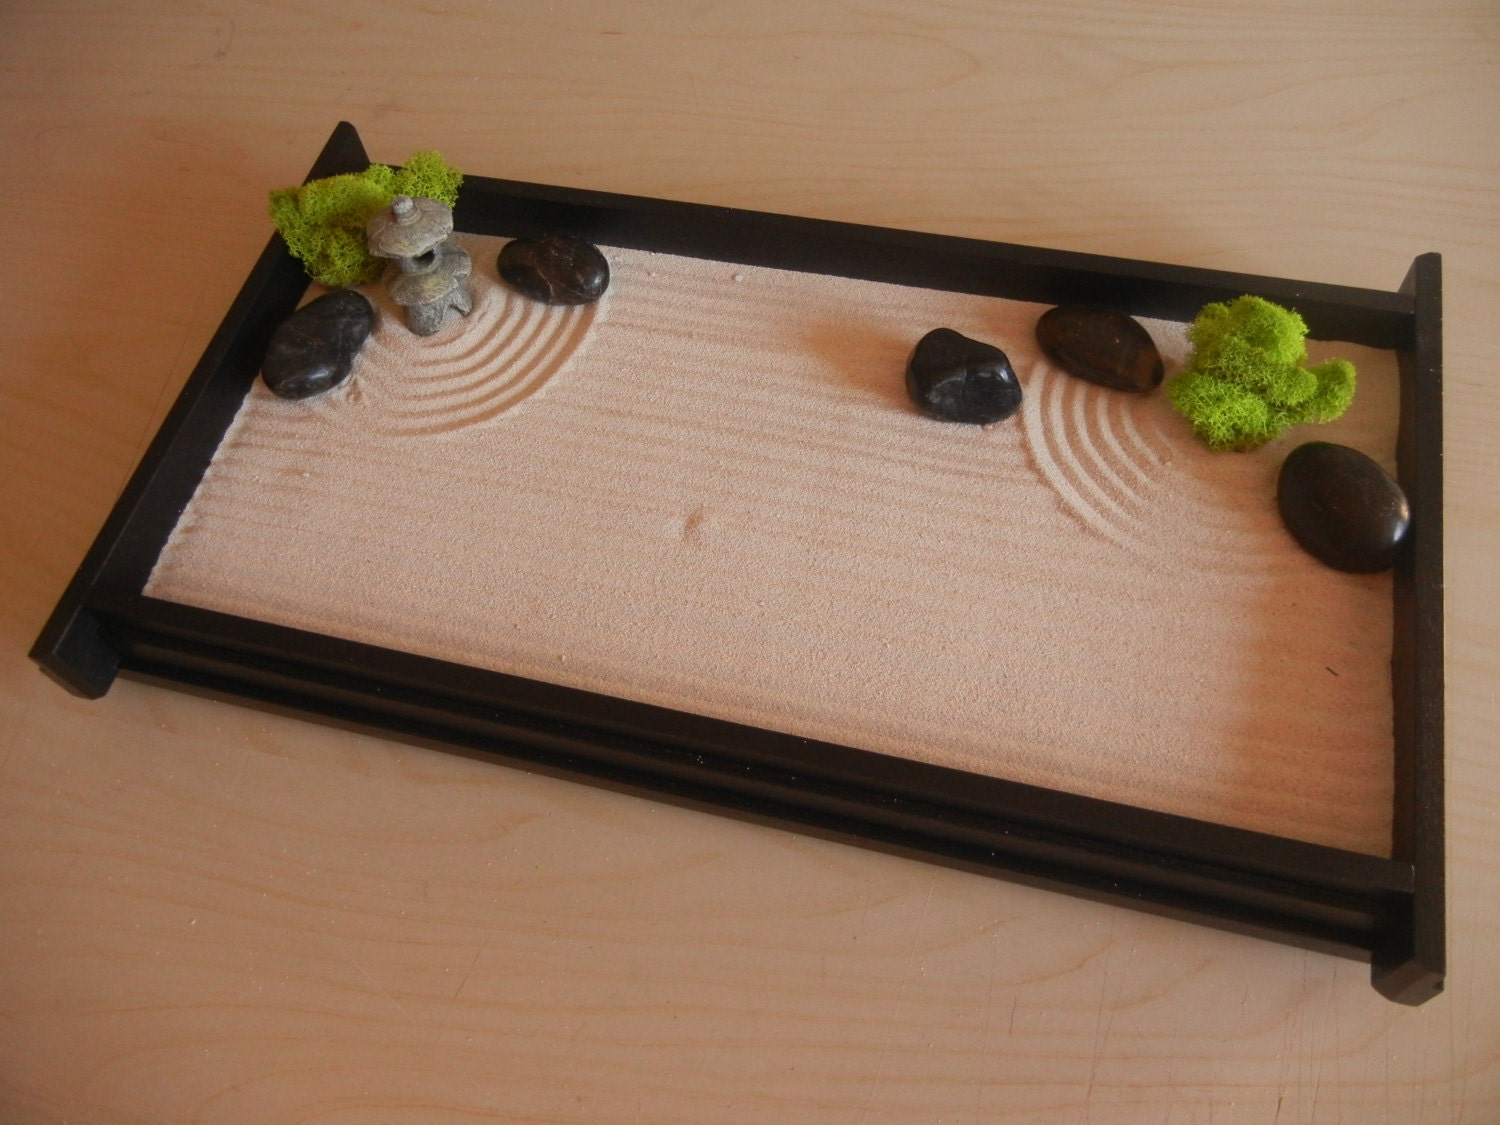 Table Zen Garden Ardyyscom